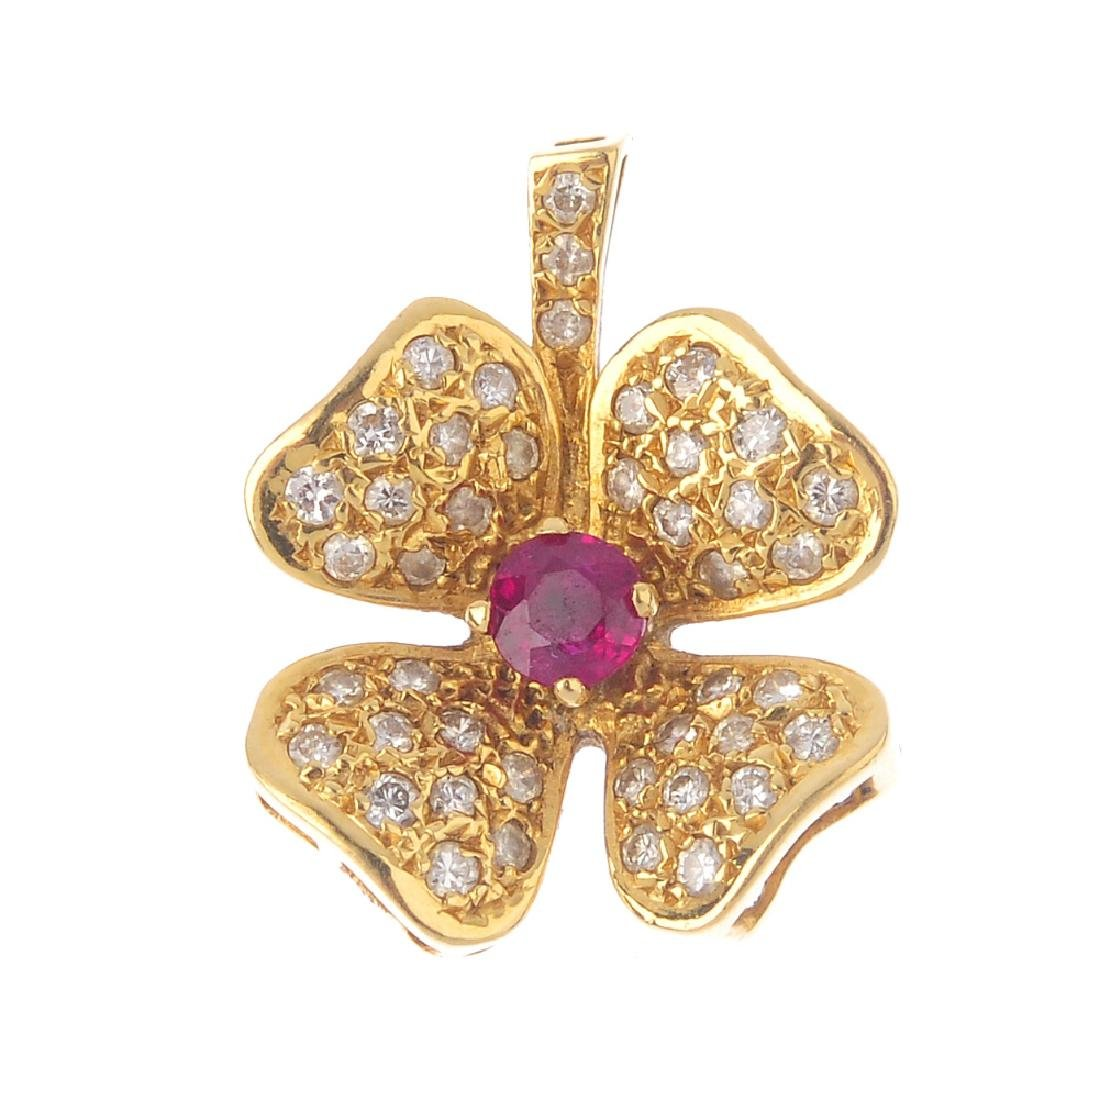 An 18ct gold diamond and ruby pendant. Designed as a